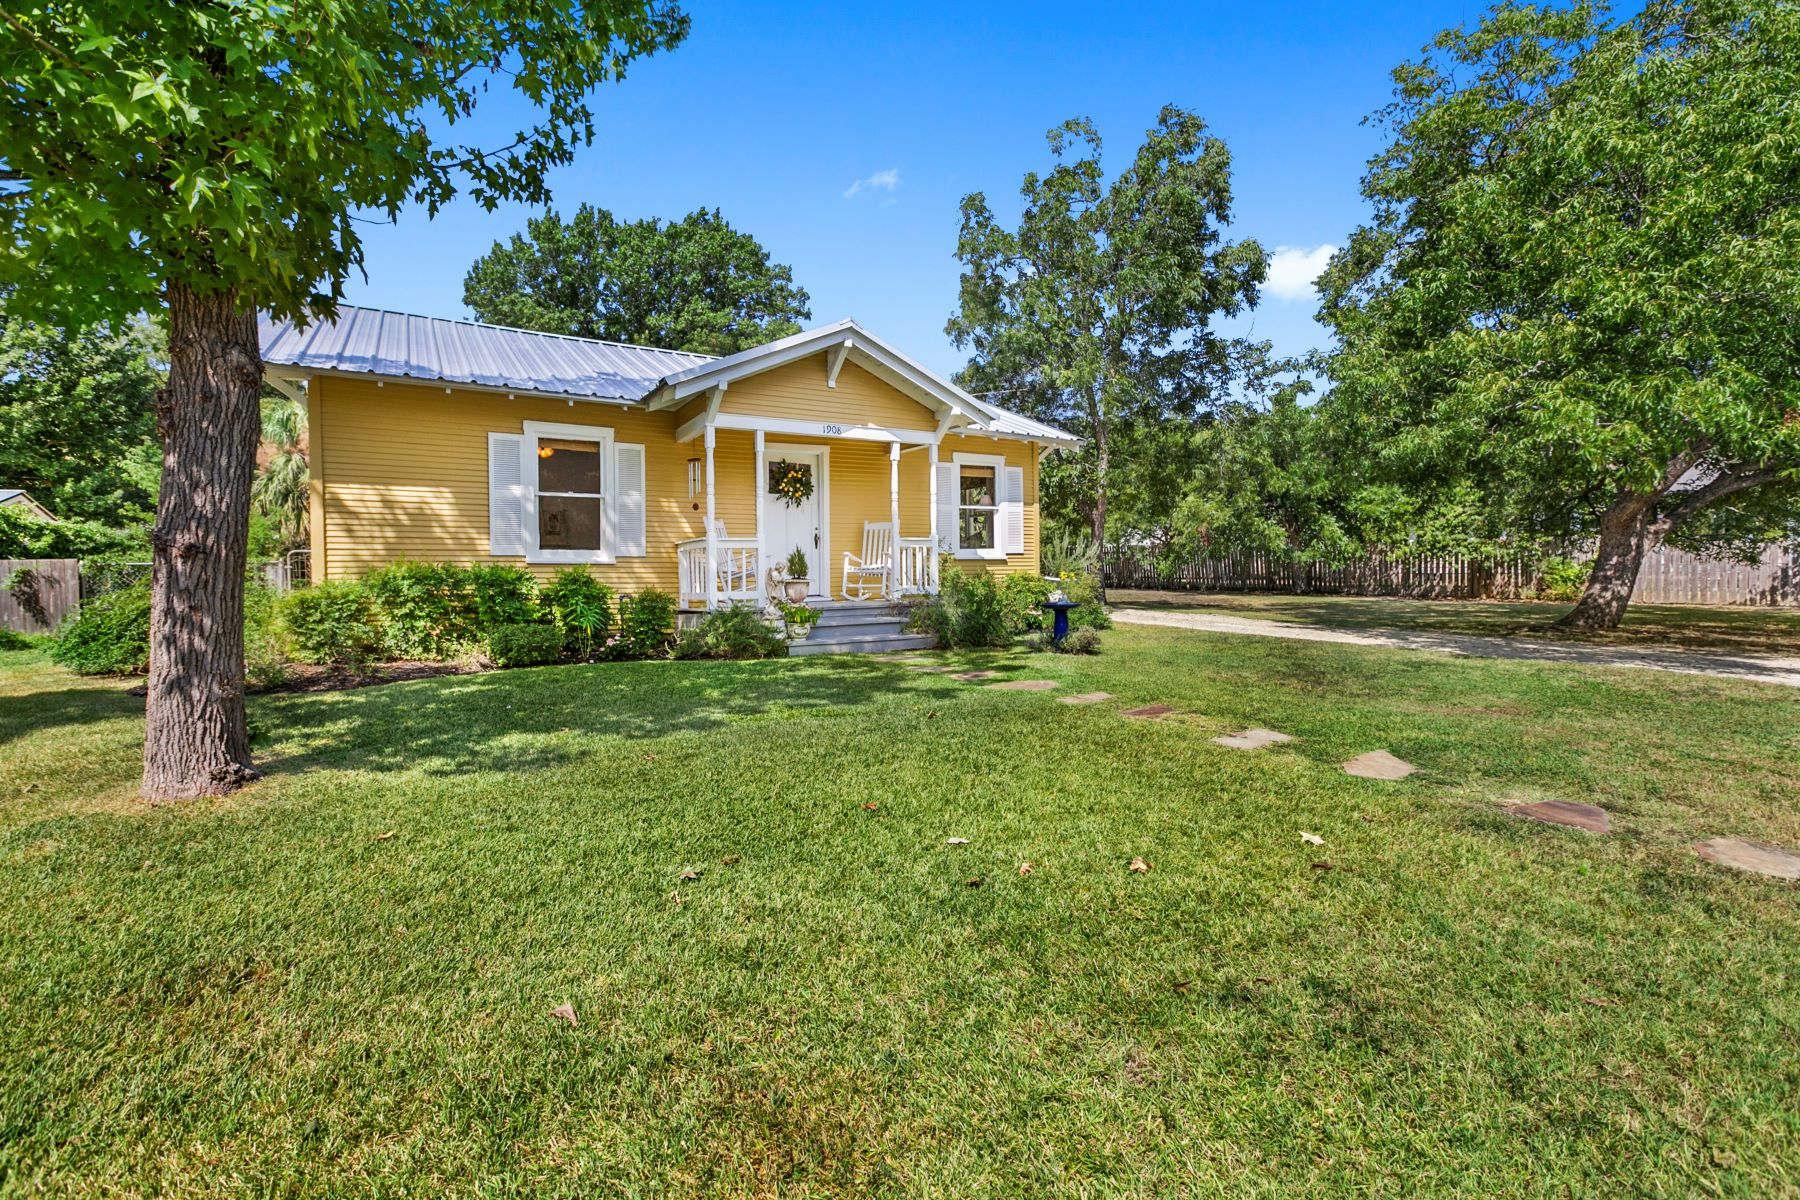 Single Family Homes for Sale at 1908 Knight Street, Georgetown, TX 78626 1908 Knight Street Georgetown, Texas 78626 United States